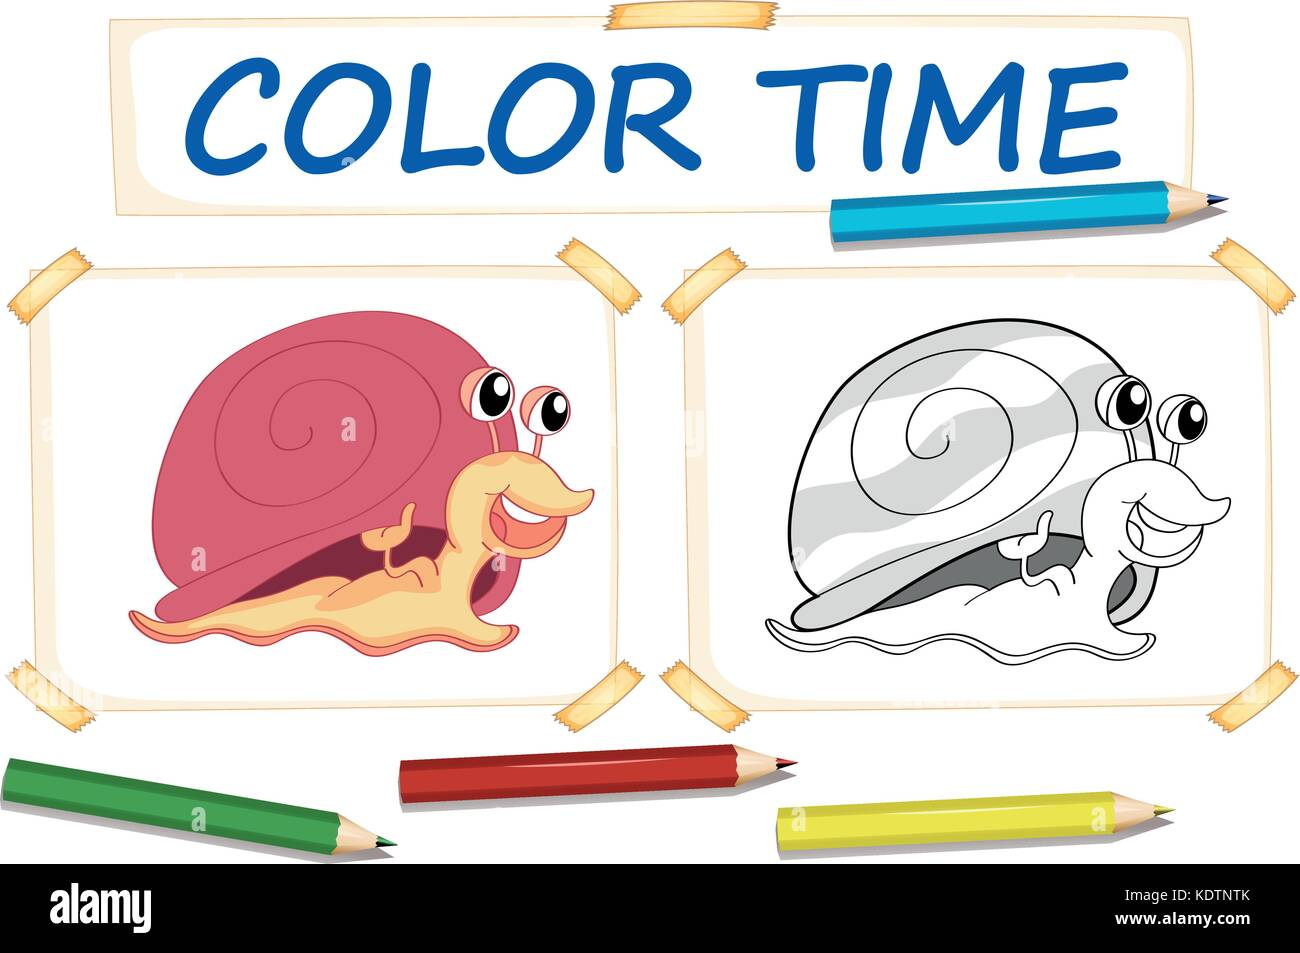 coloring template with cute snail illustration stock vector art